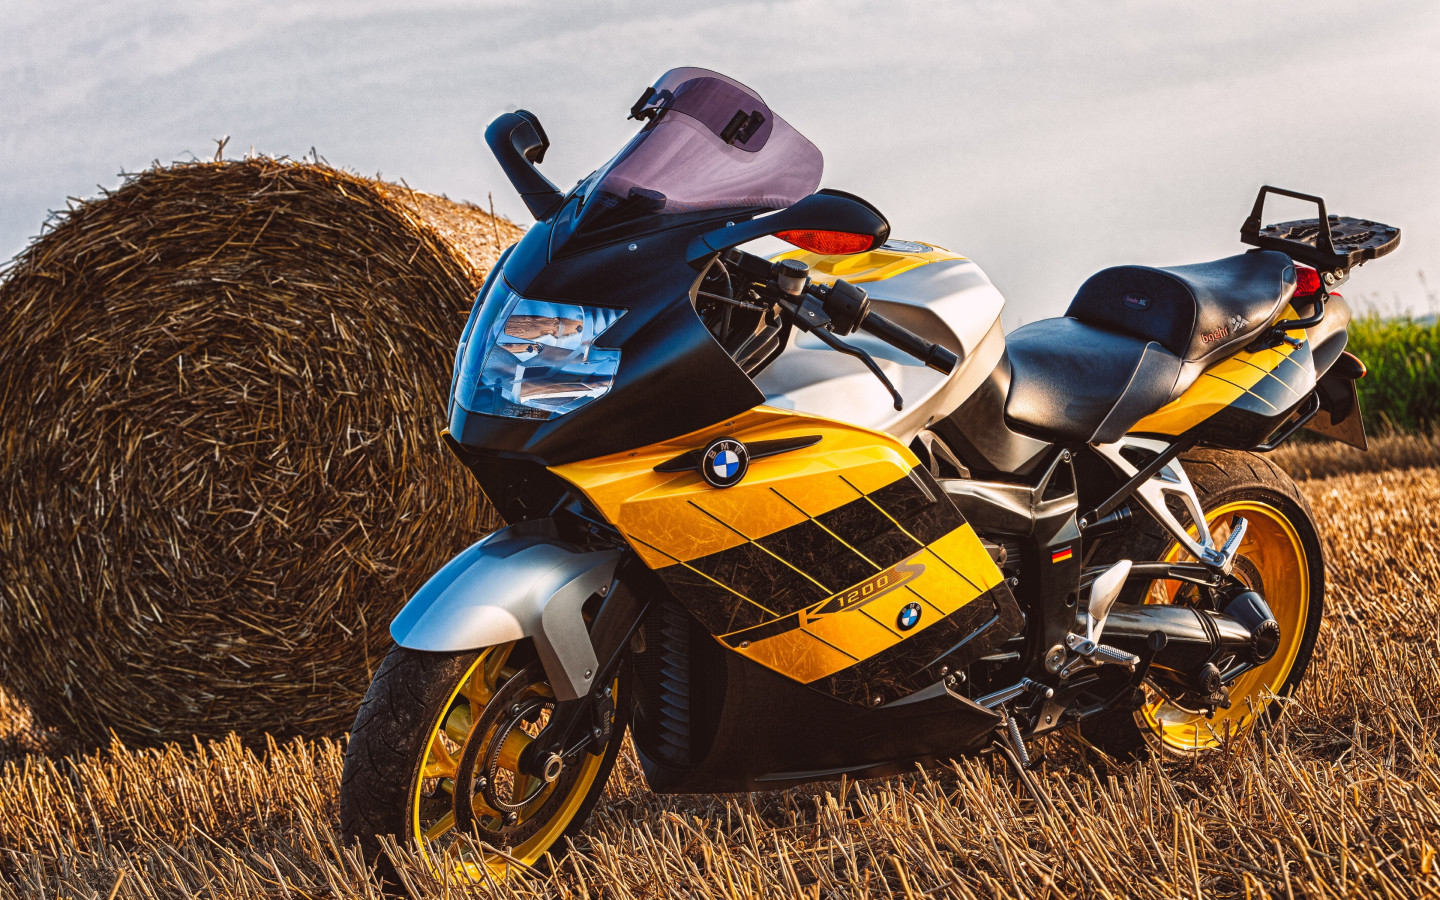 BMW Motorcycle K1200S wallpaper 1440x900